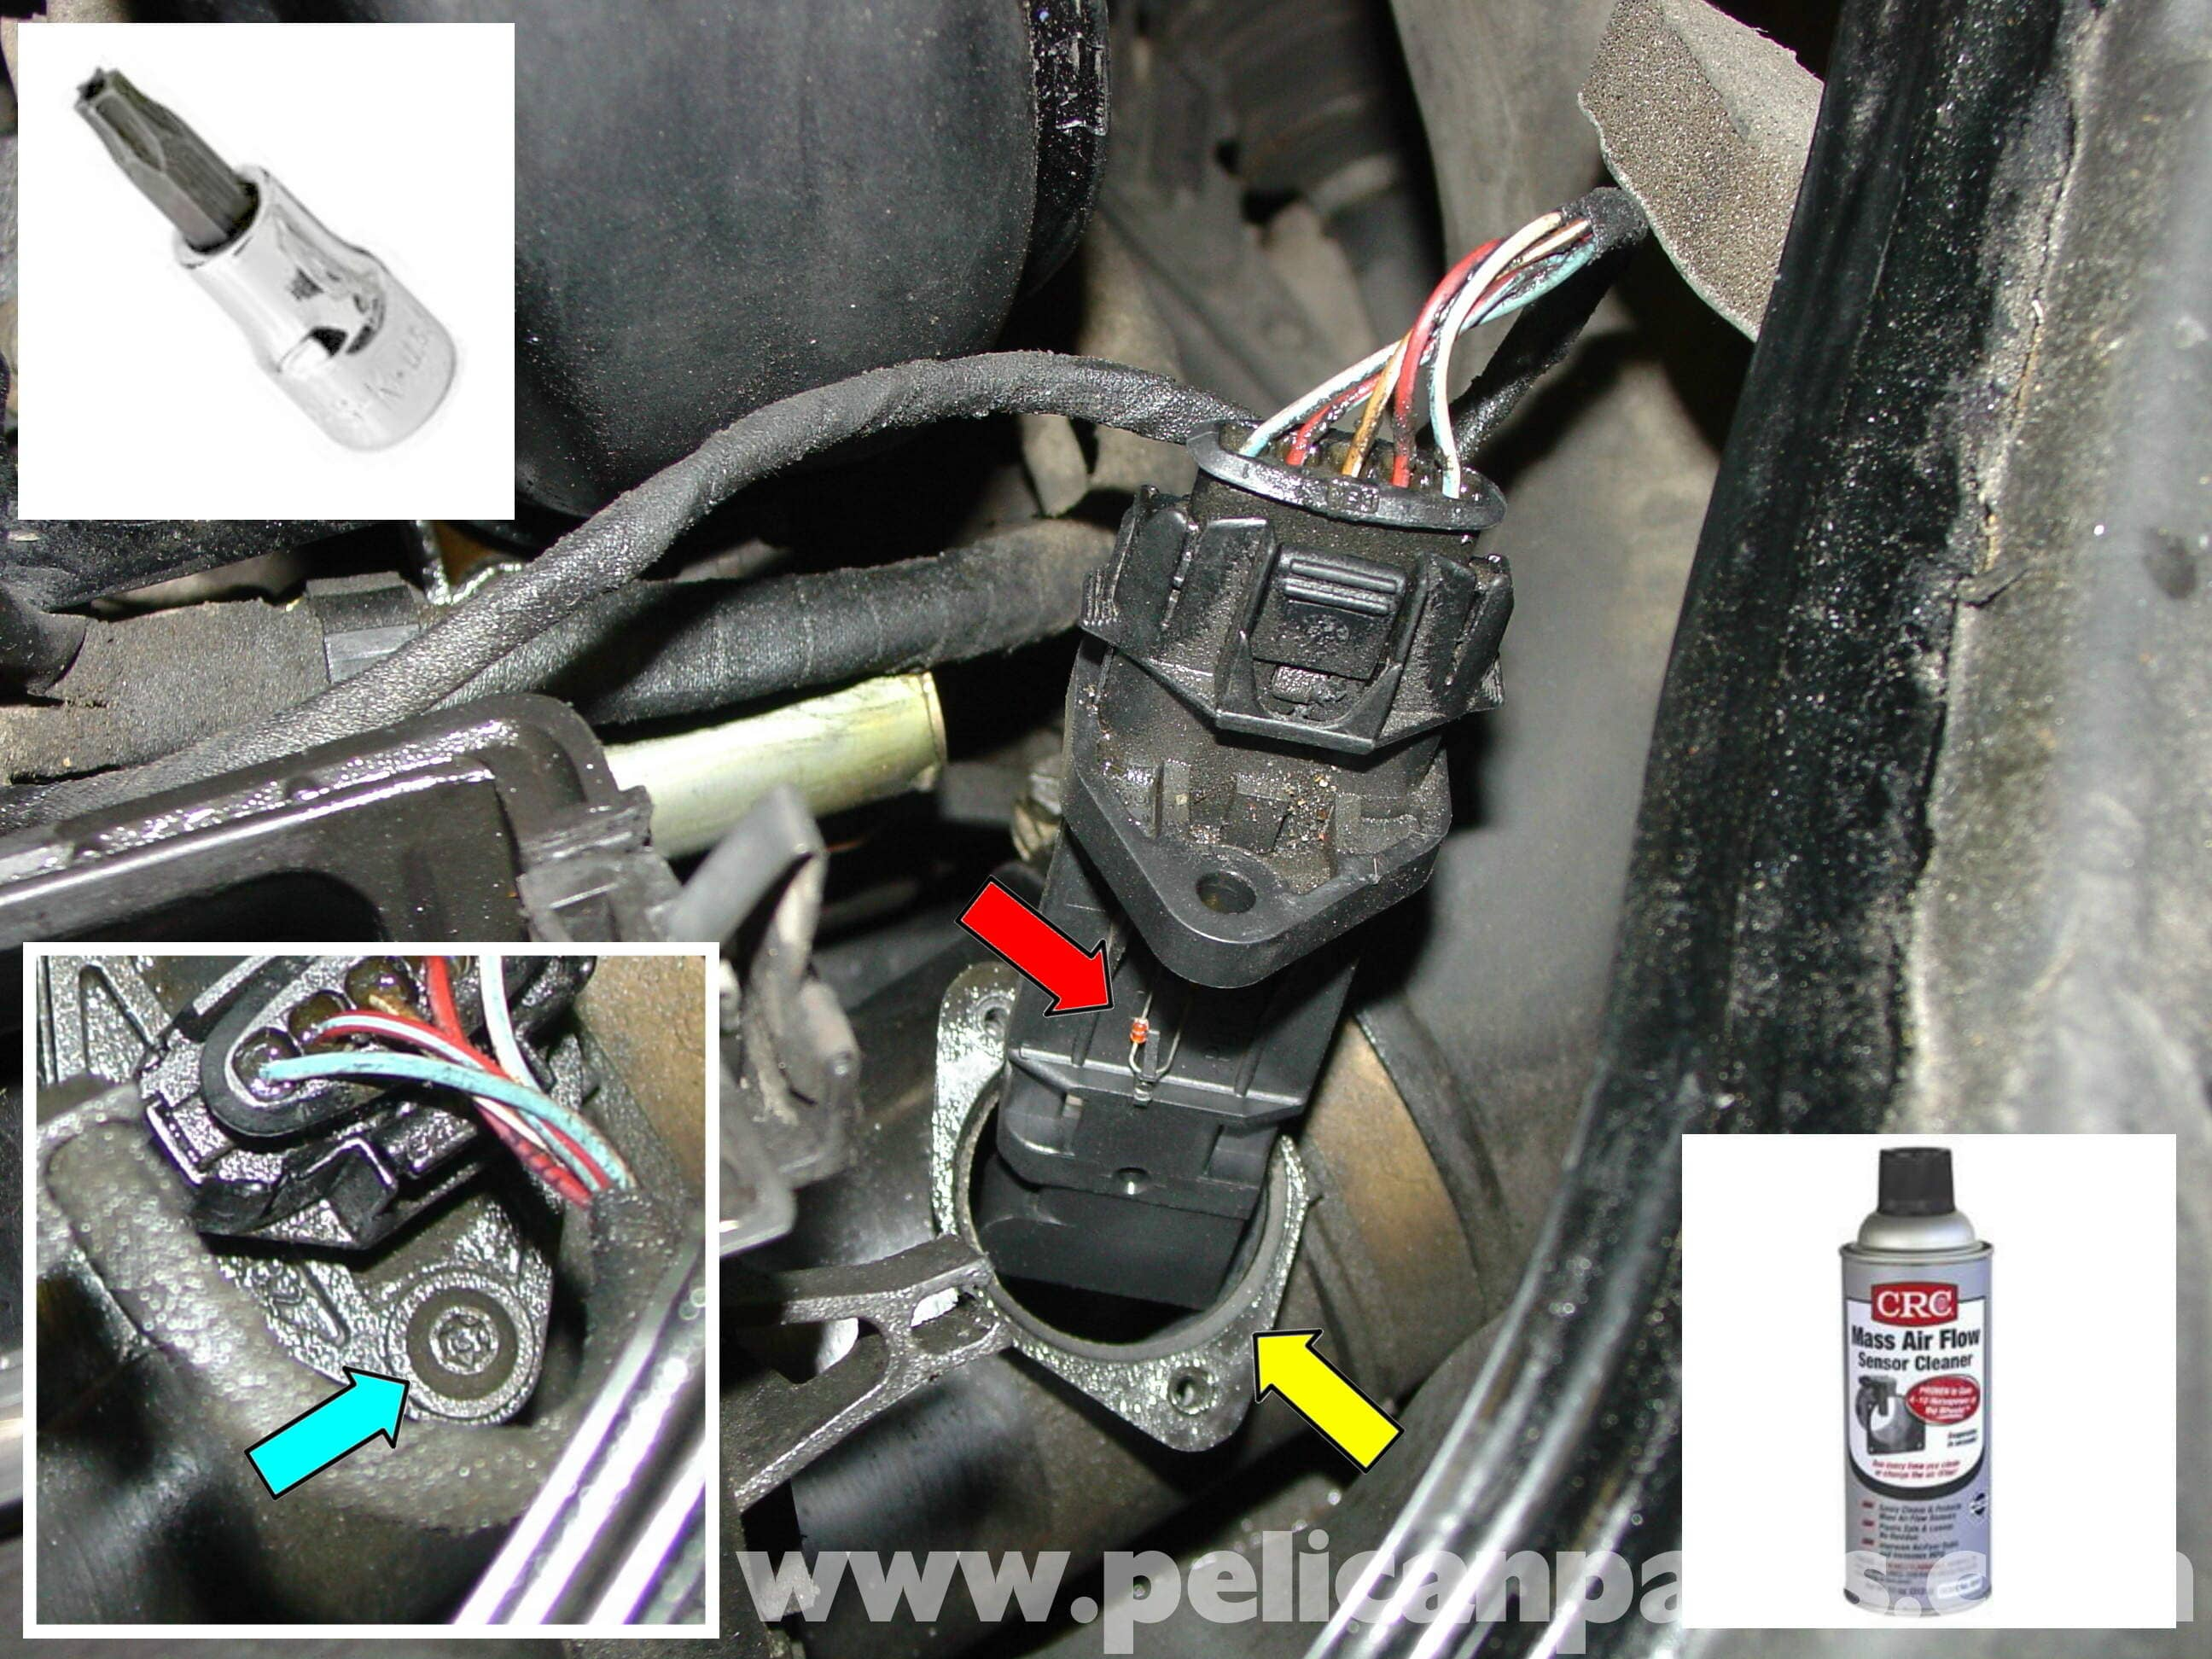 27 FUEL Mass Air Flow Sensor moreover RepairGuideContent also Watch together with 97 Coolant Temperature Sensor 173632 in addition Buickindex. on 98 regal alternator wiring